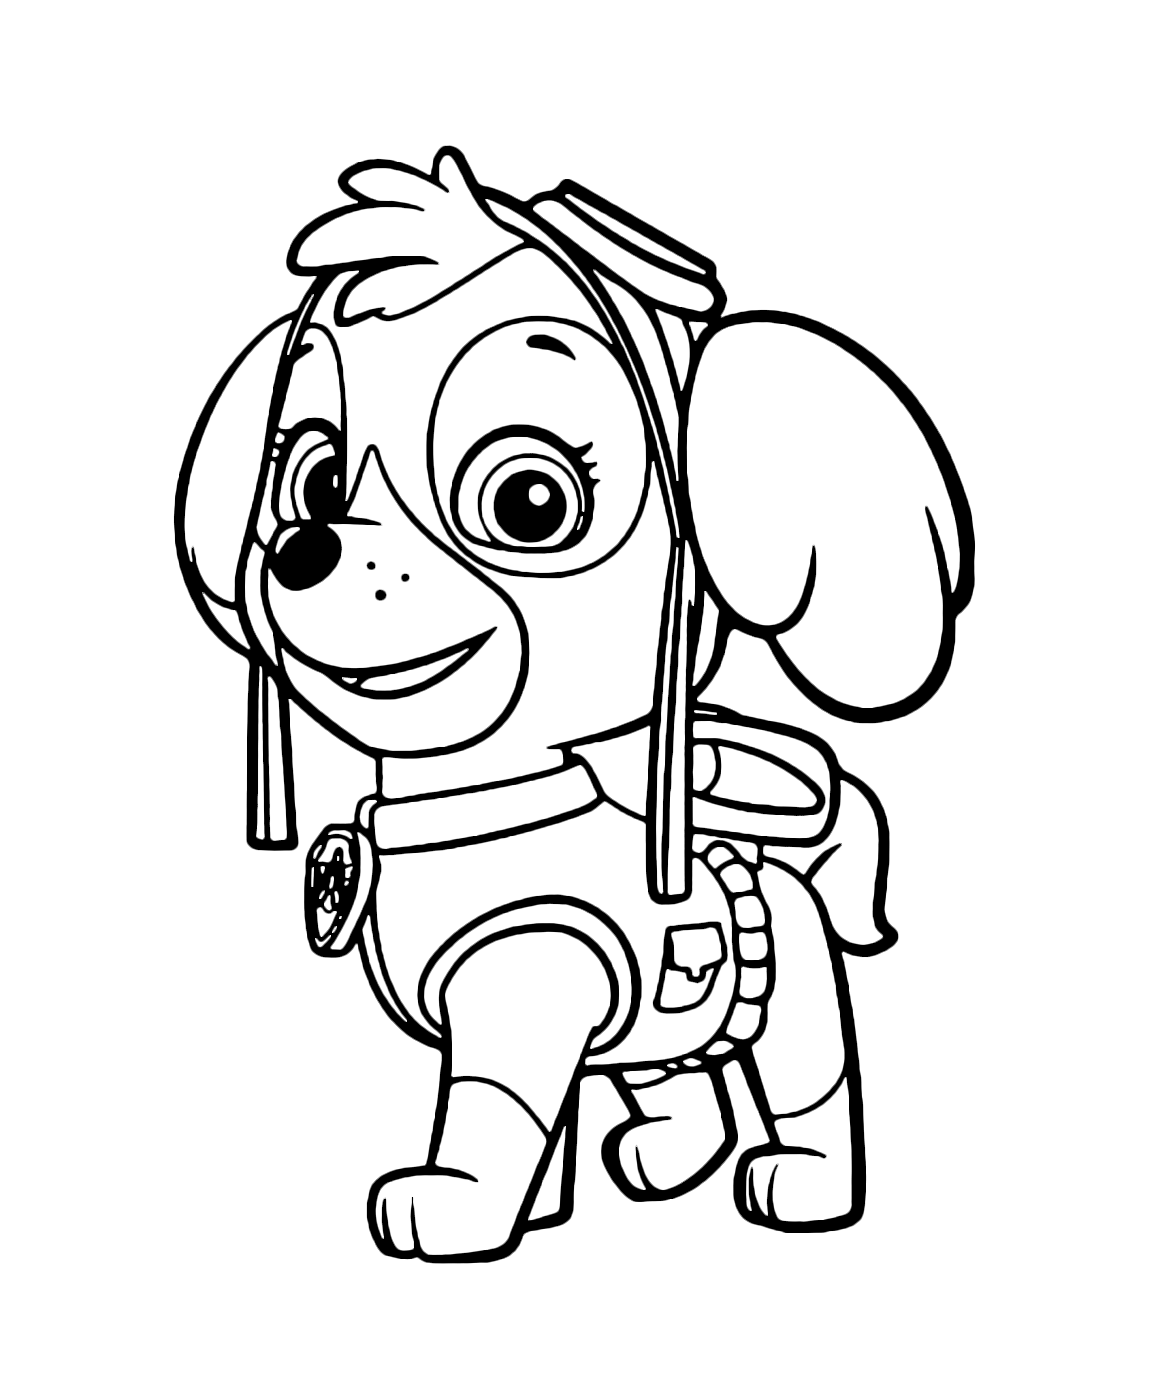 paw patrol mission paw coloring pages top 10 paw patrol nick jr in 2020 paw patrol coloring pages patrol mission paw coloring paw